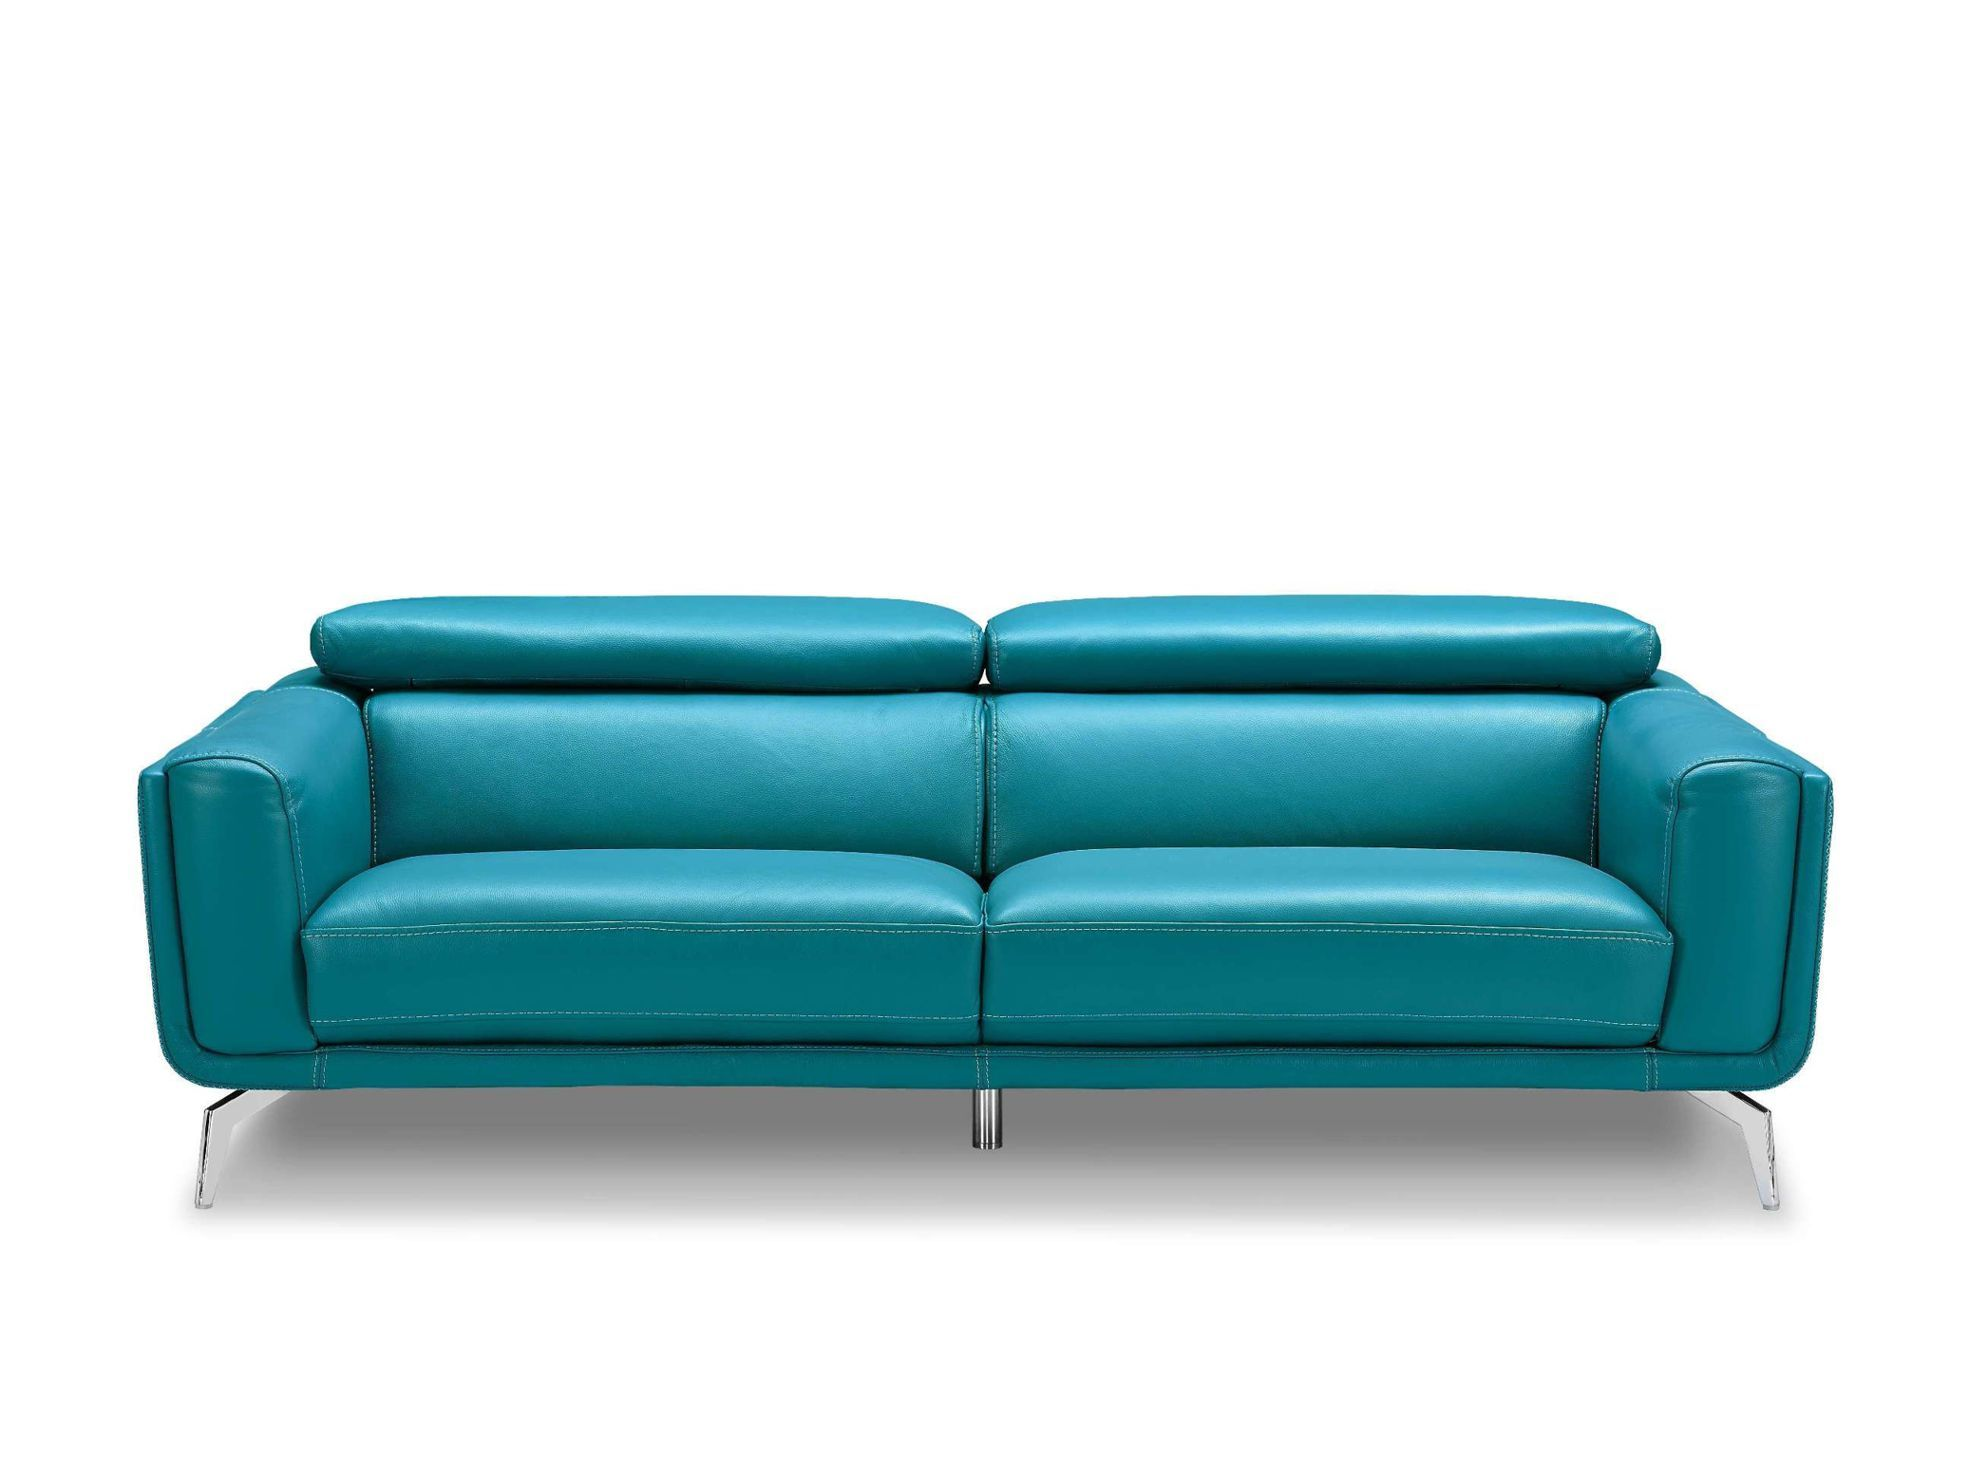 Sprint Modern Sofa In Blue Leather Teal Leather Sofas Blue Leather Sofa Modern Leather Sofa